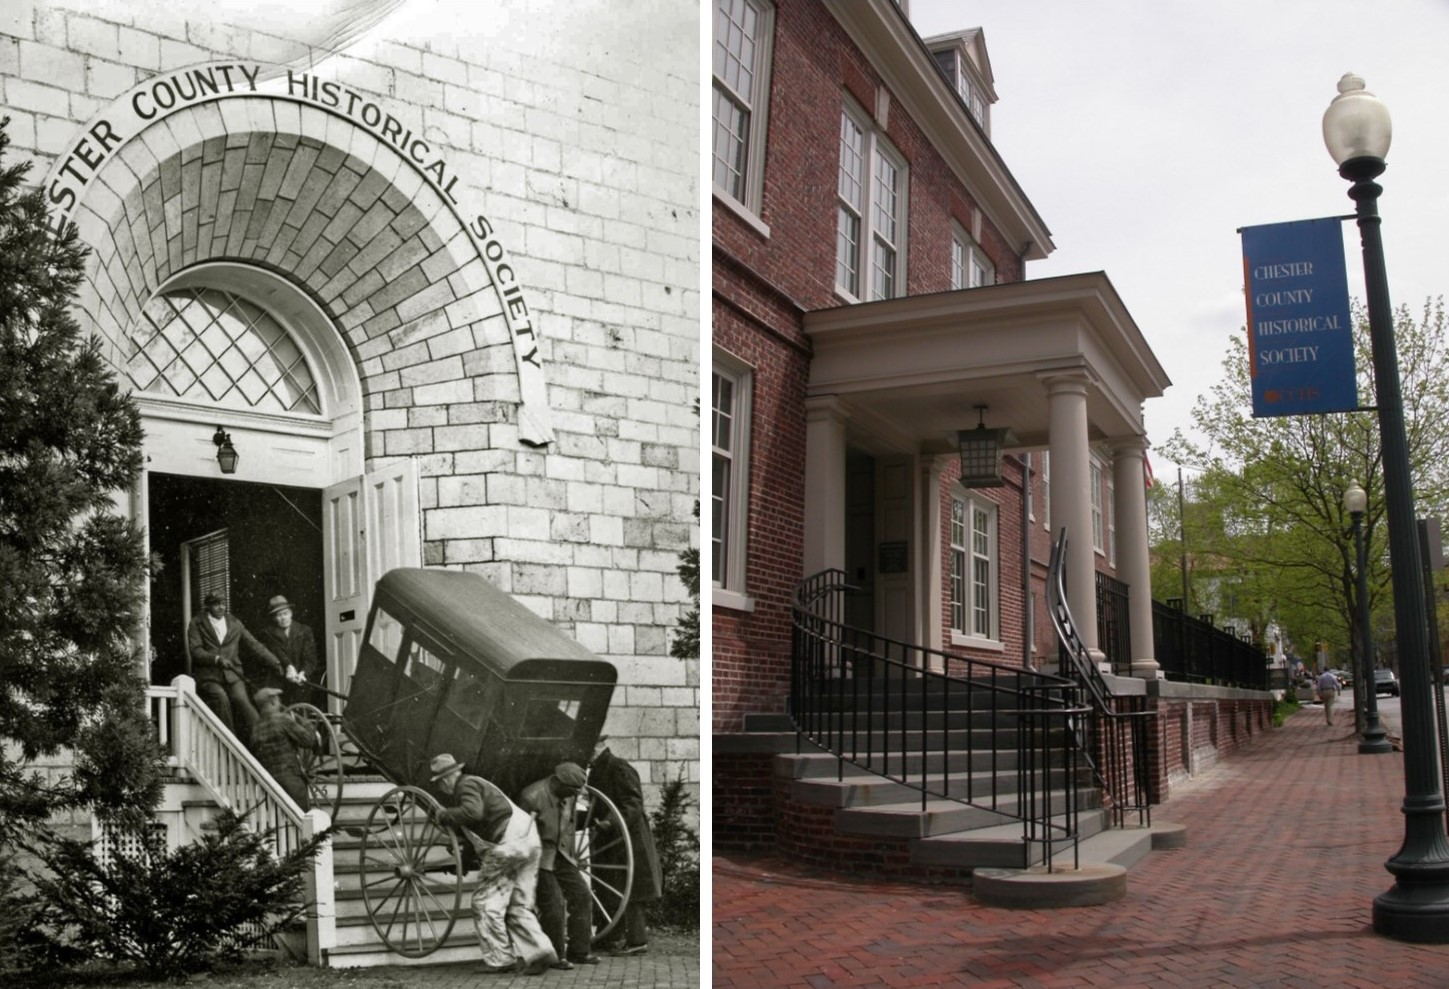 Chester County Historical Society Invites You to Give Back This Holiday Season